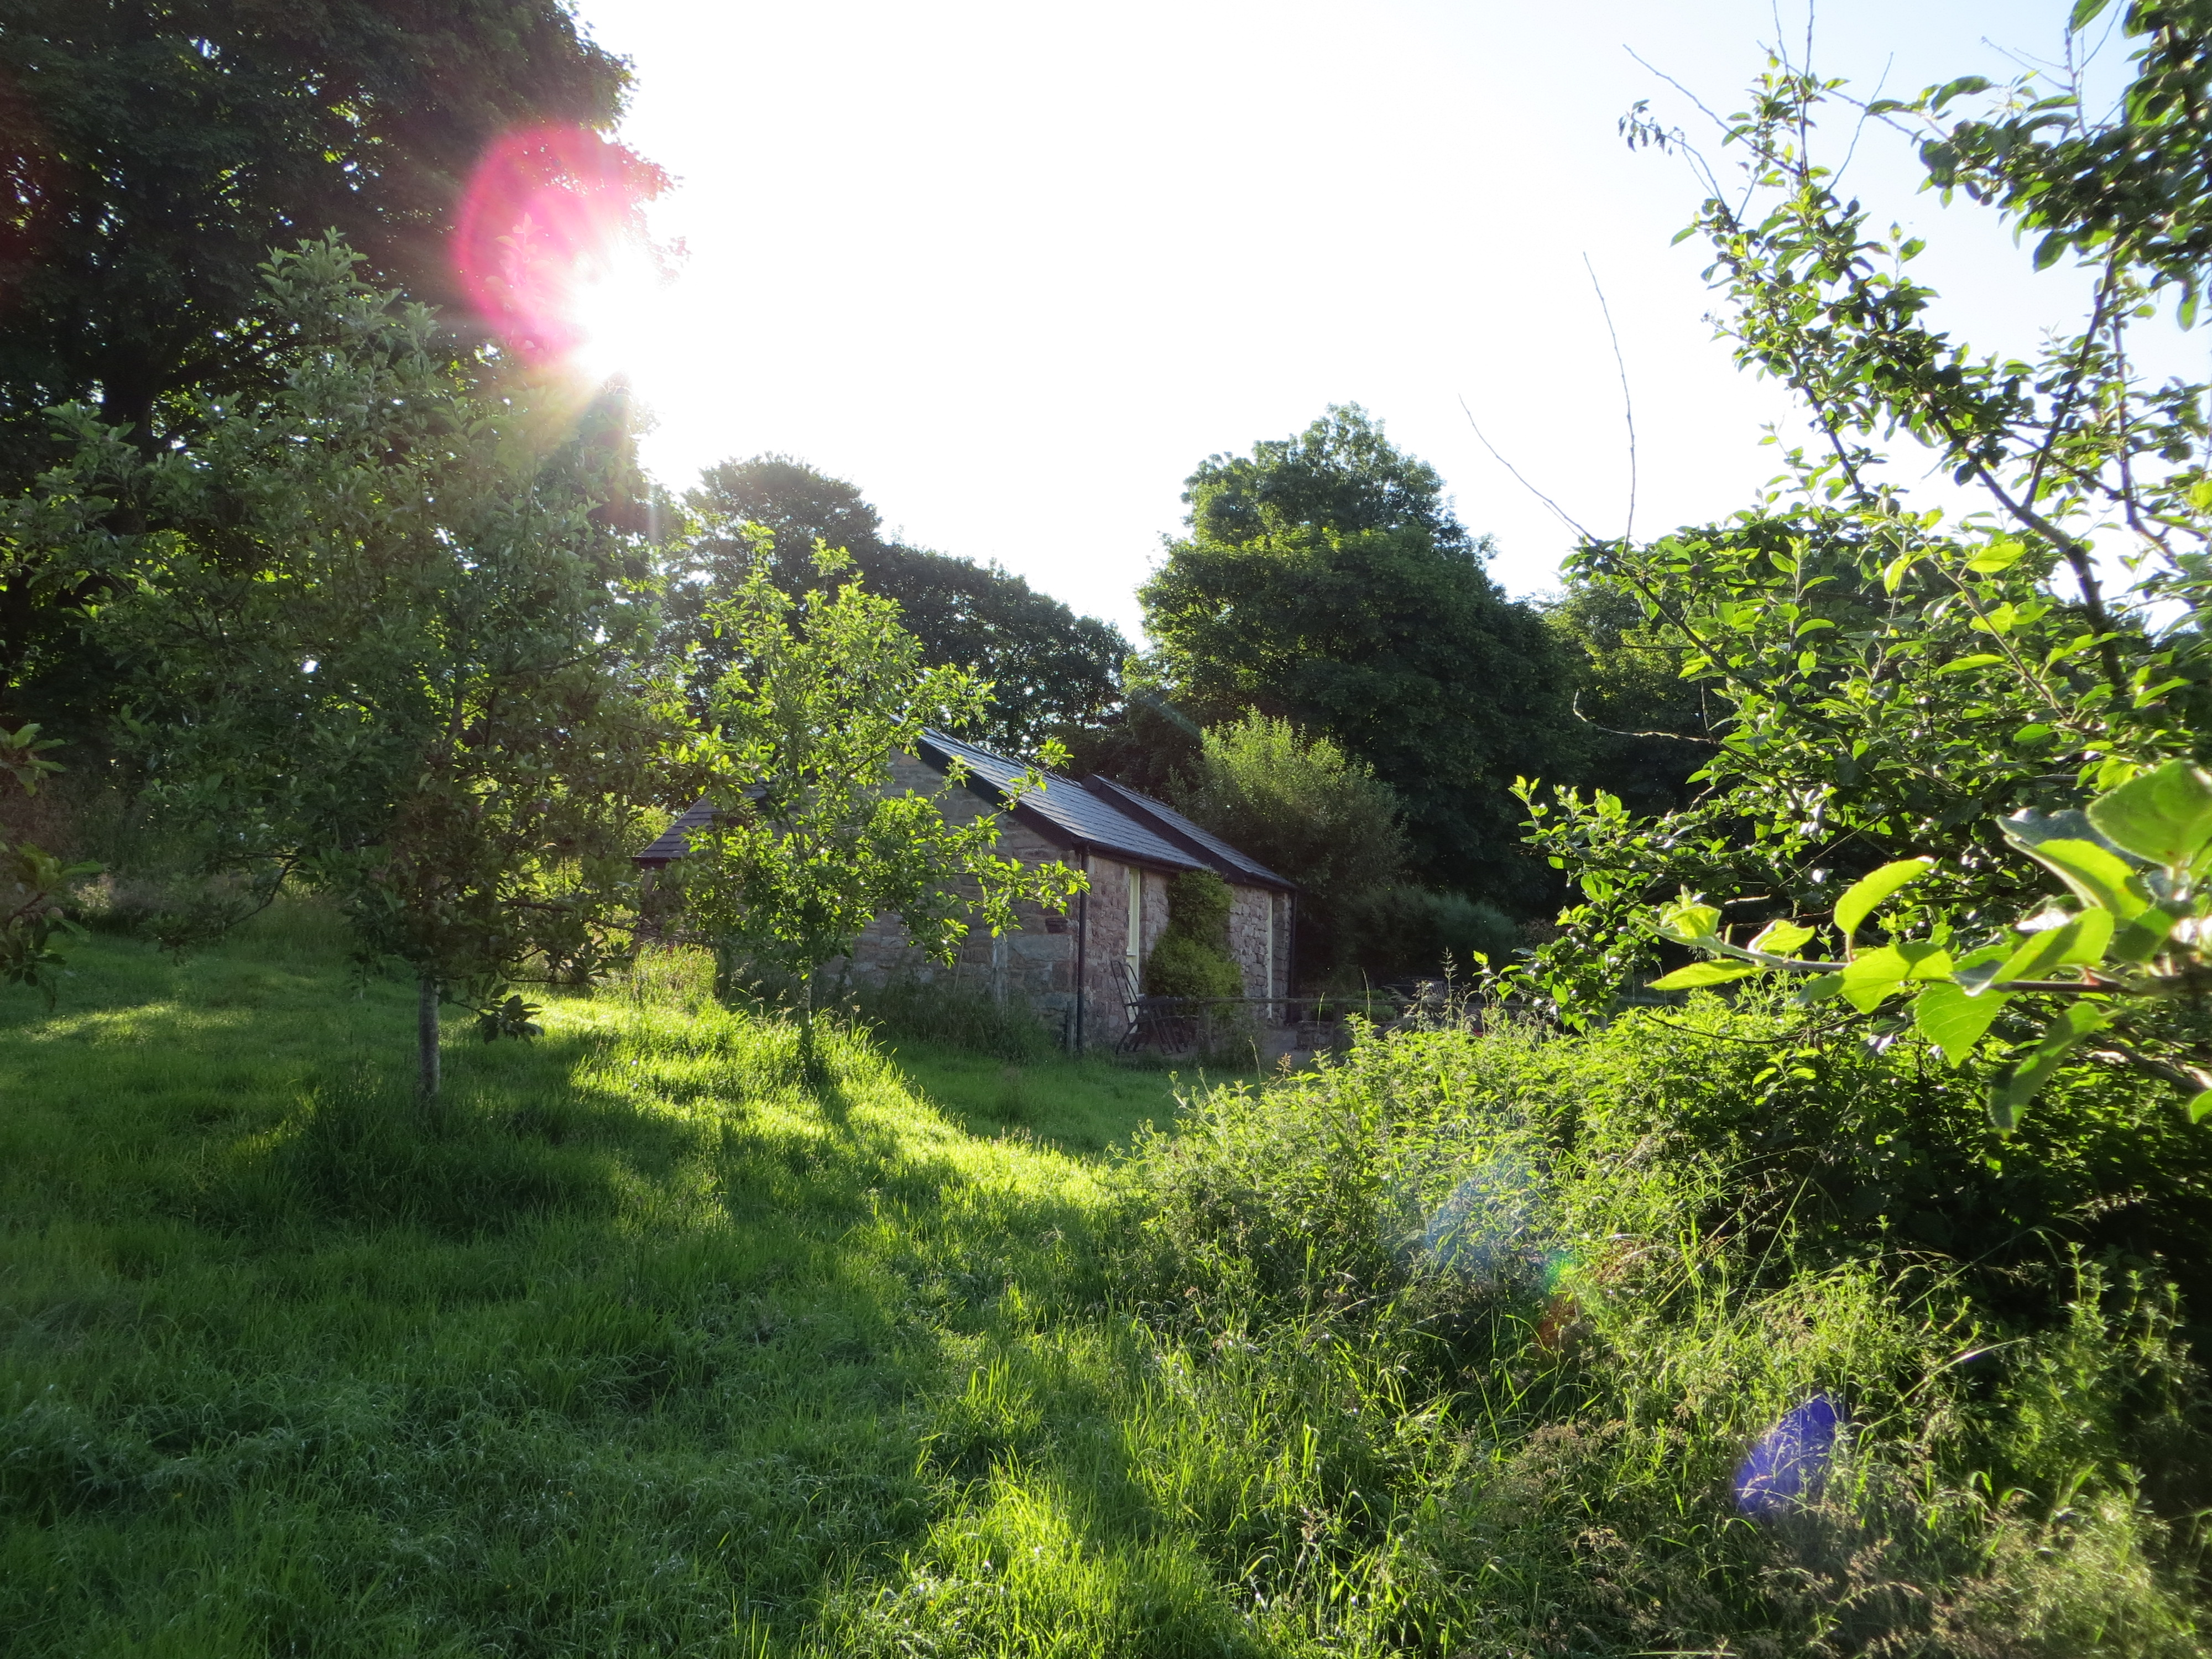 The cottage is set in an apple orchard